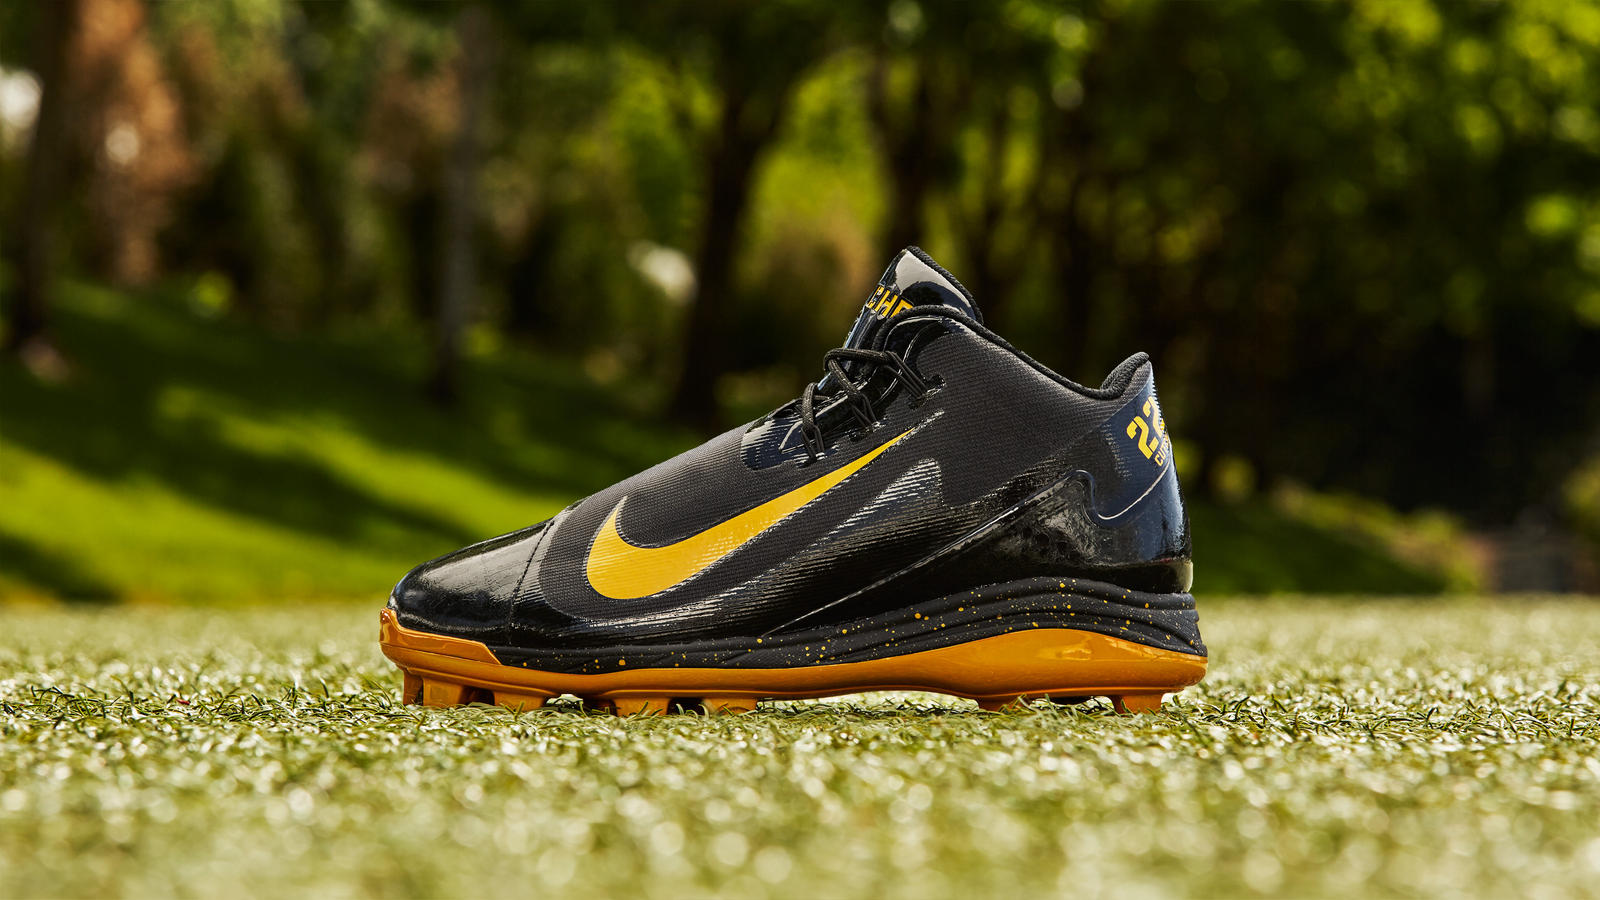 Andrew McCutchen's Nike Air Swingman Legend PE